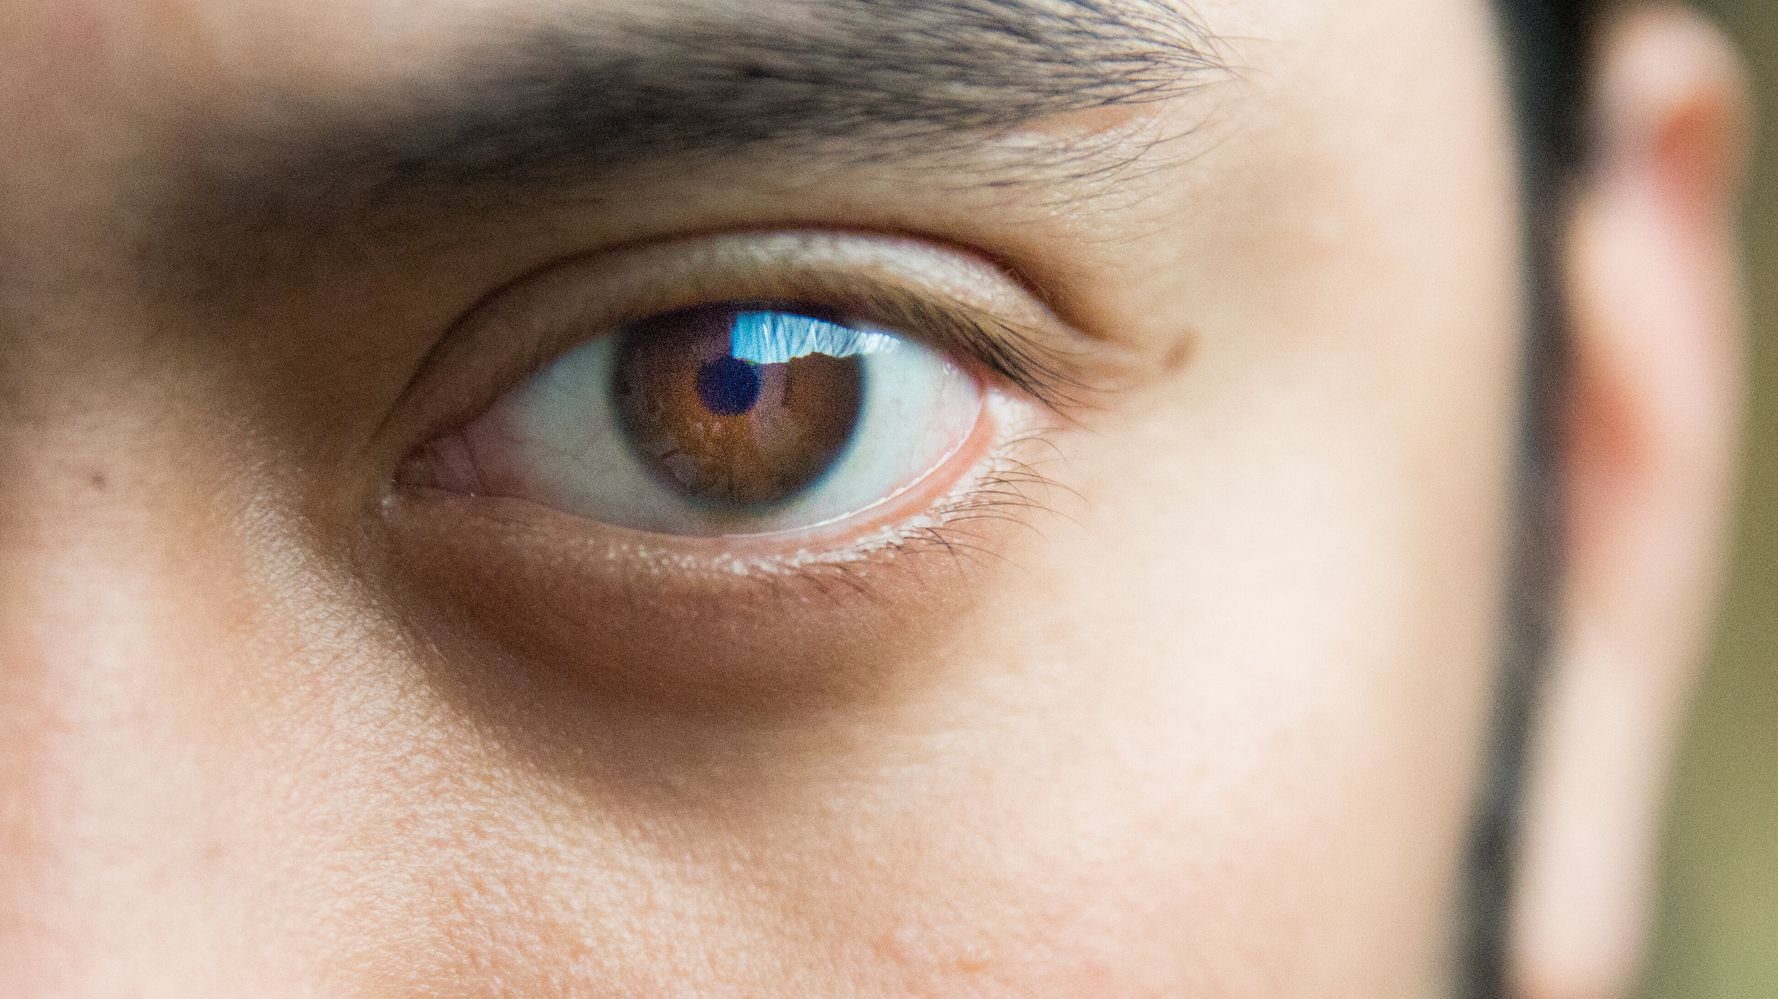 What To Do If Your Eye Twitches